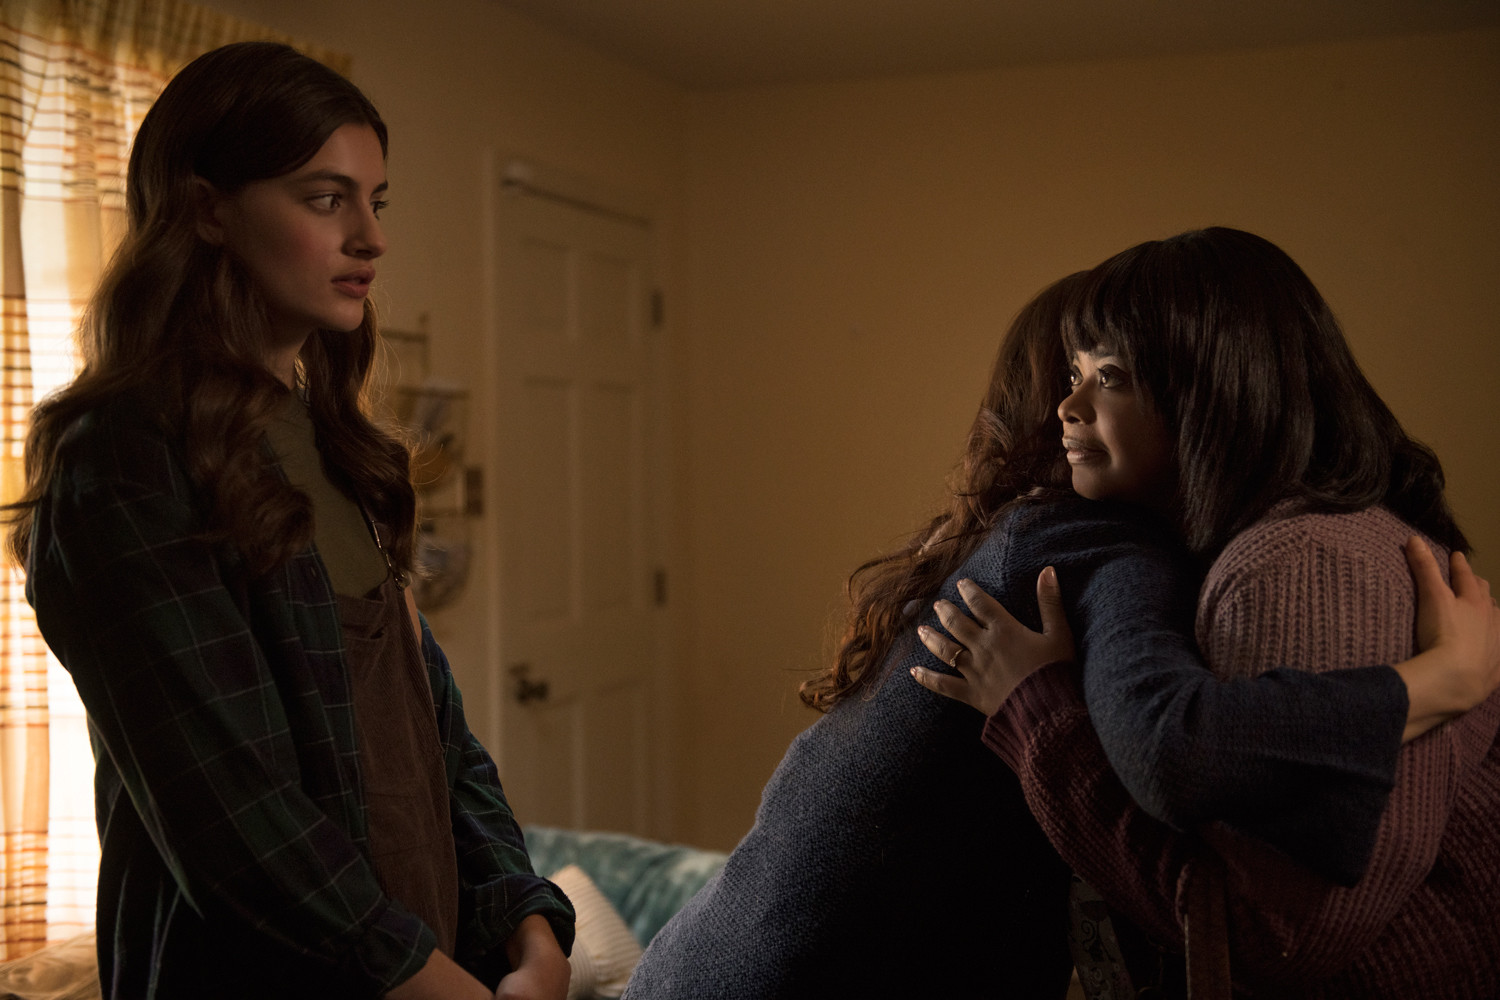 Diana Silvers and Octavia Spencer in Ma (2019)